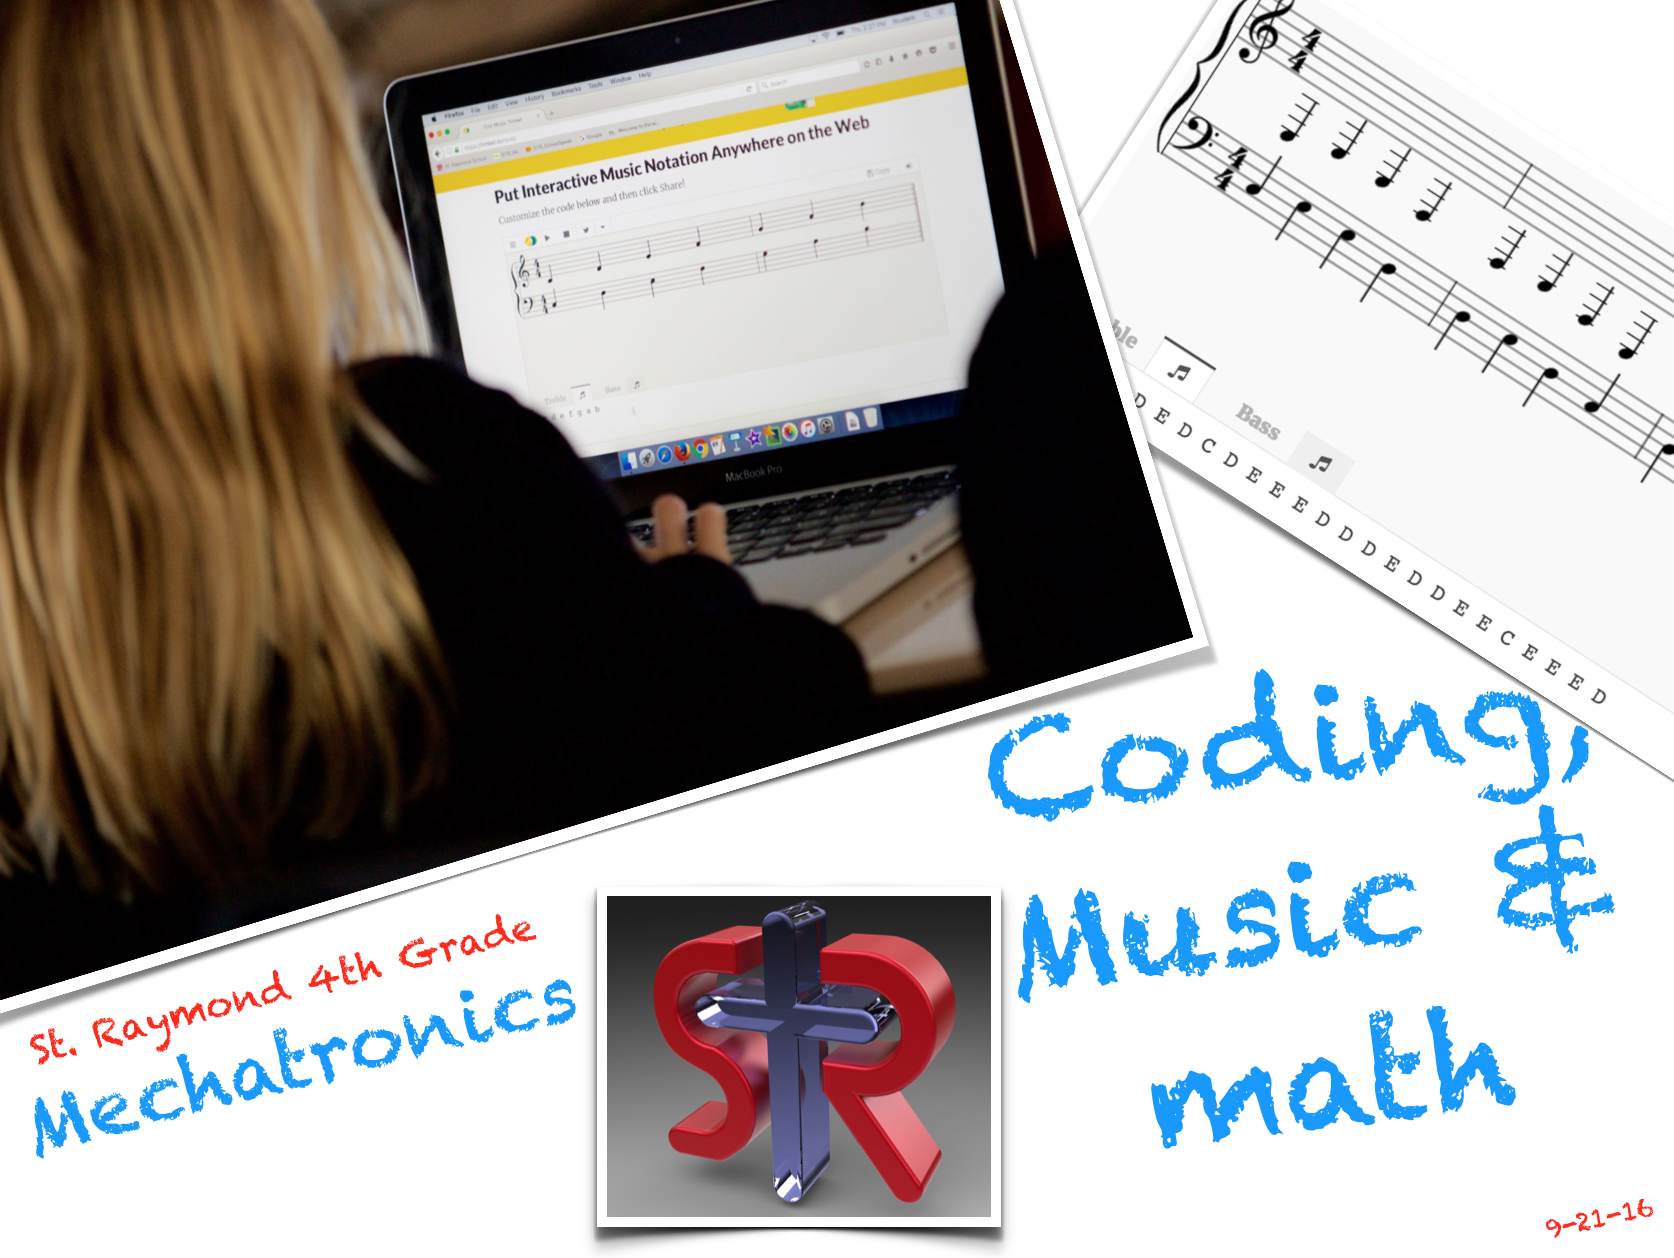 Musical Notations are code that Record Frequency Values